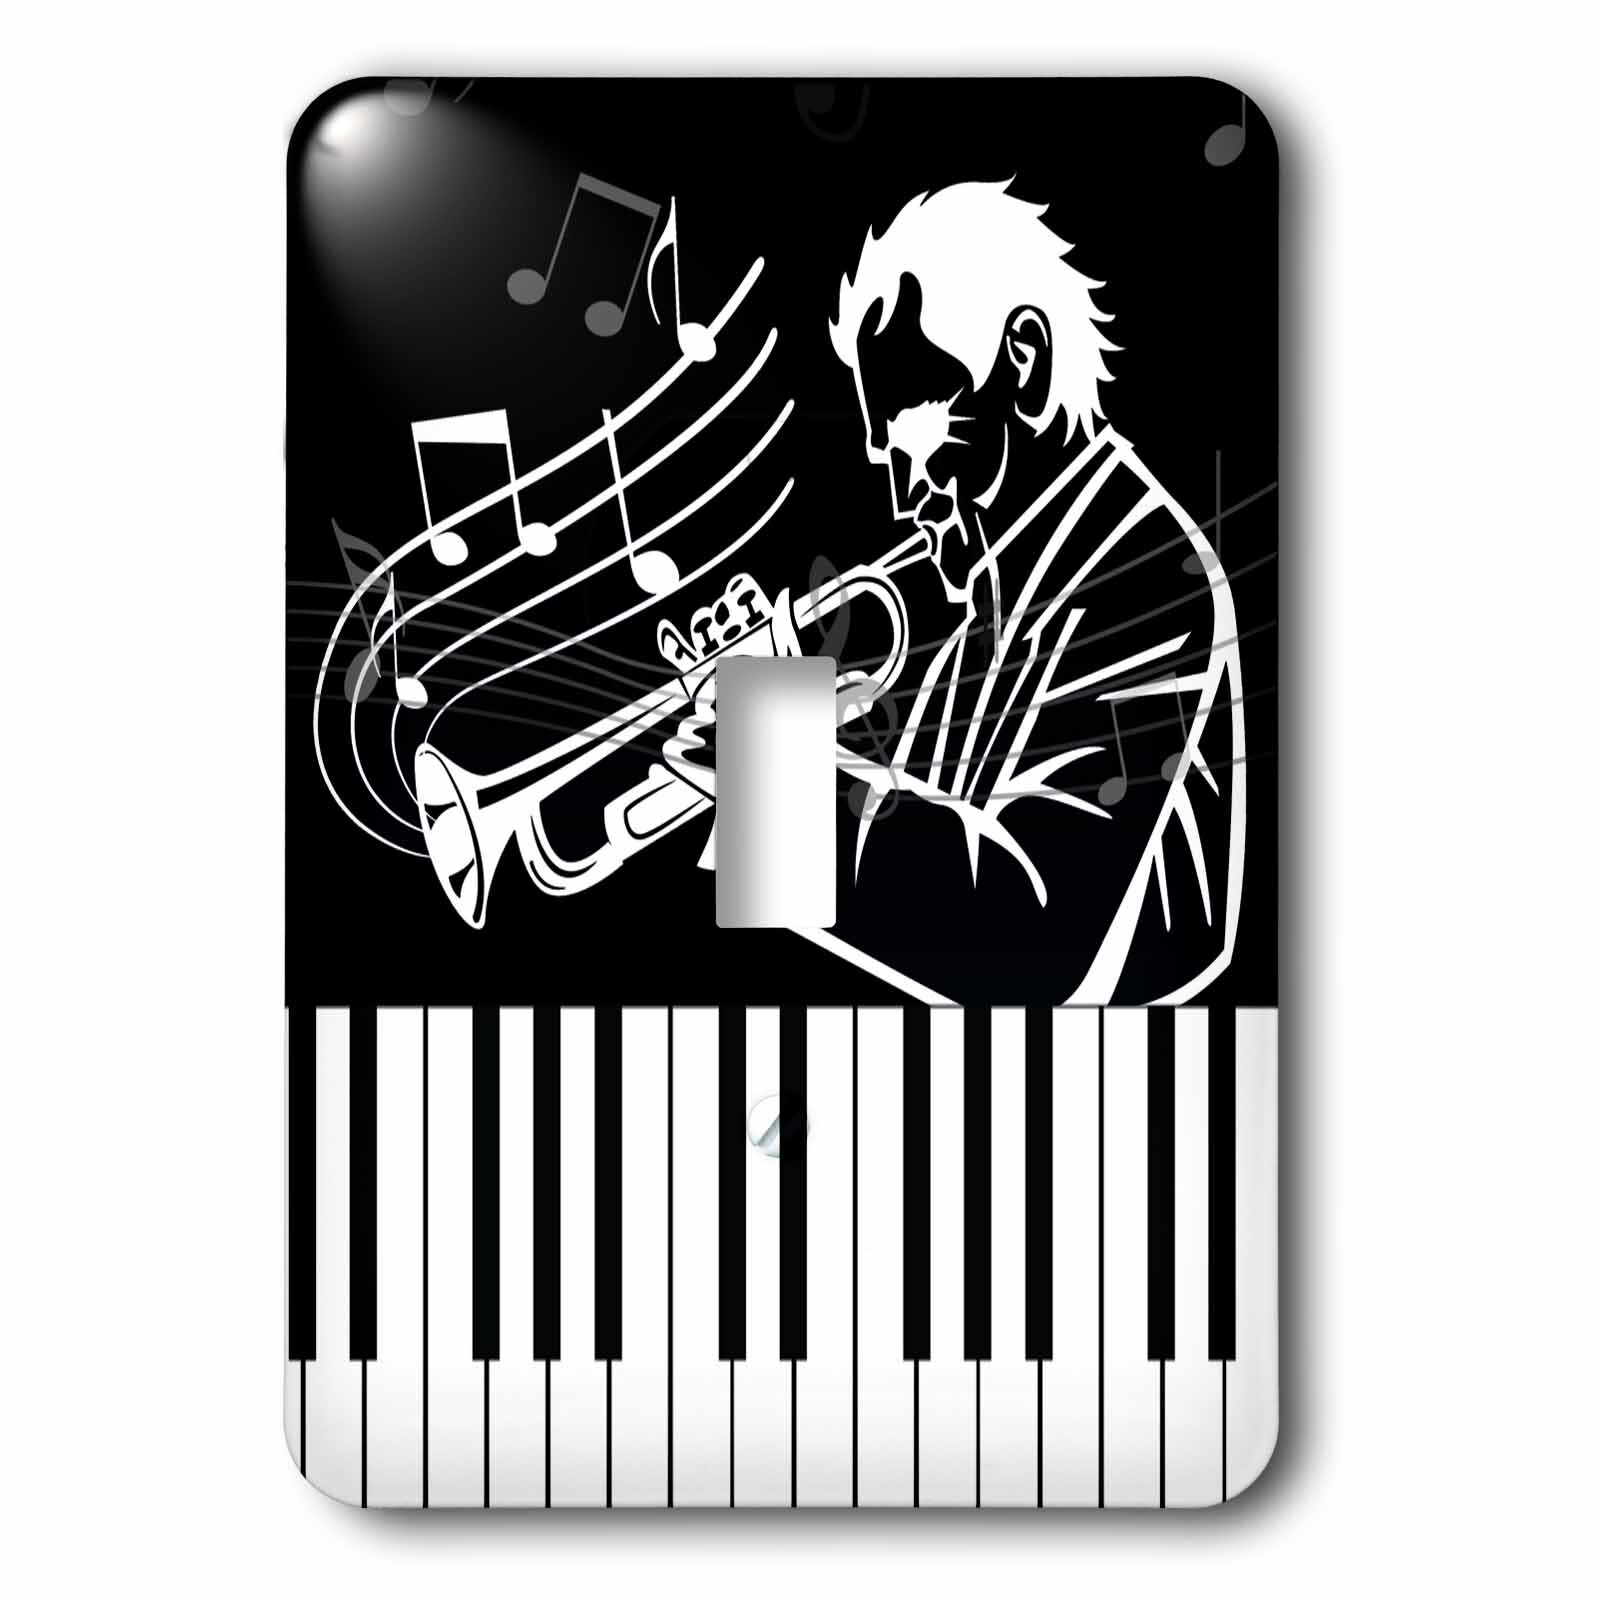 Jazz Musician Playing a Horn with Notes and Piano Keys Socket Plate